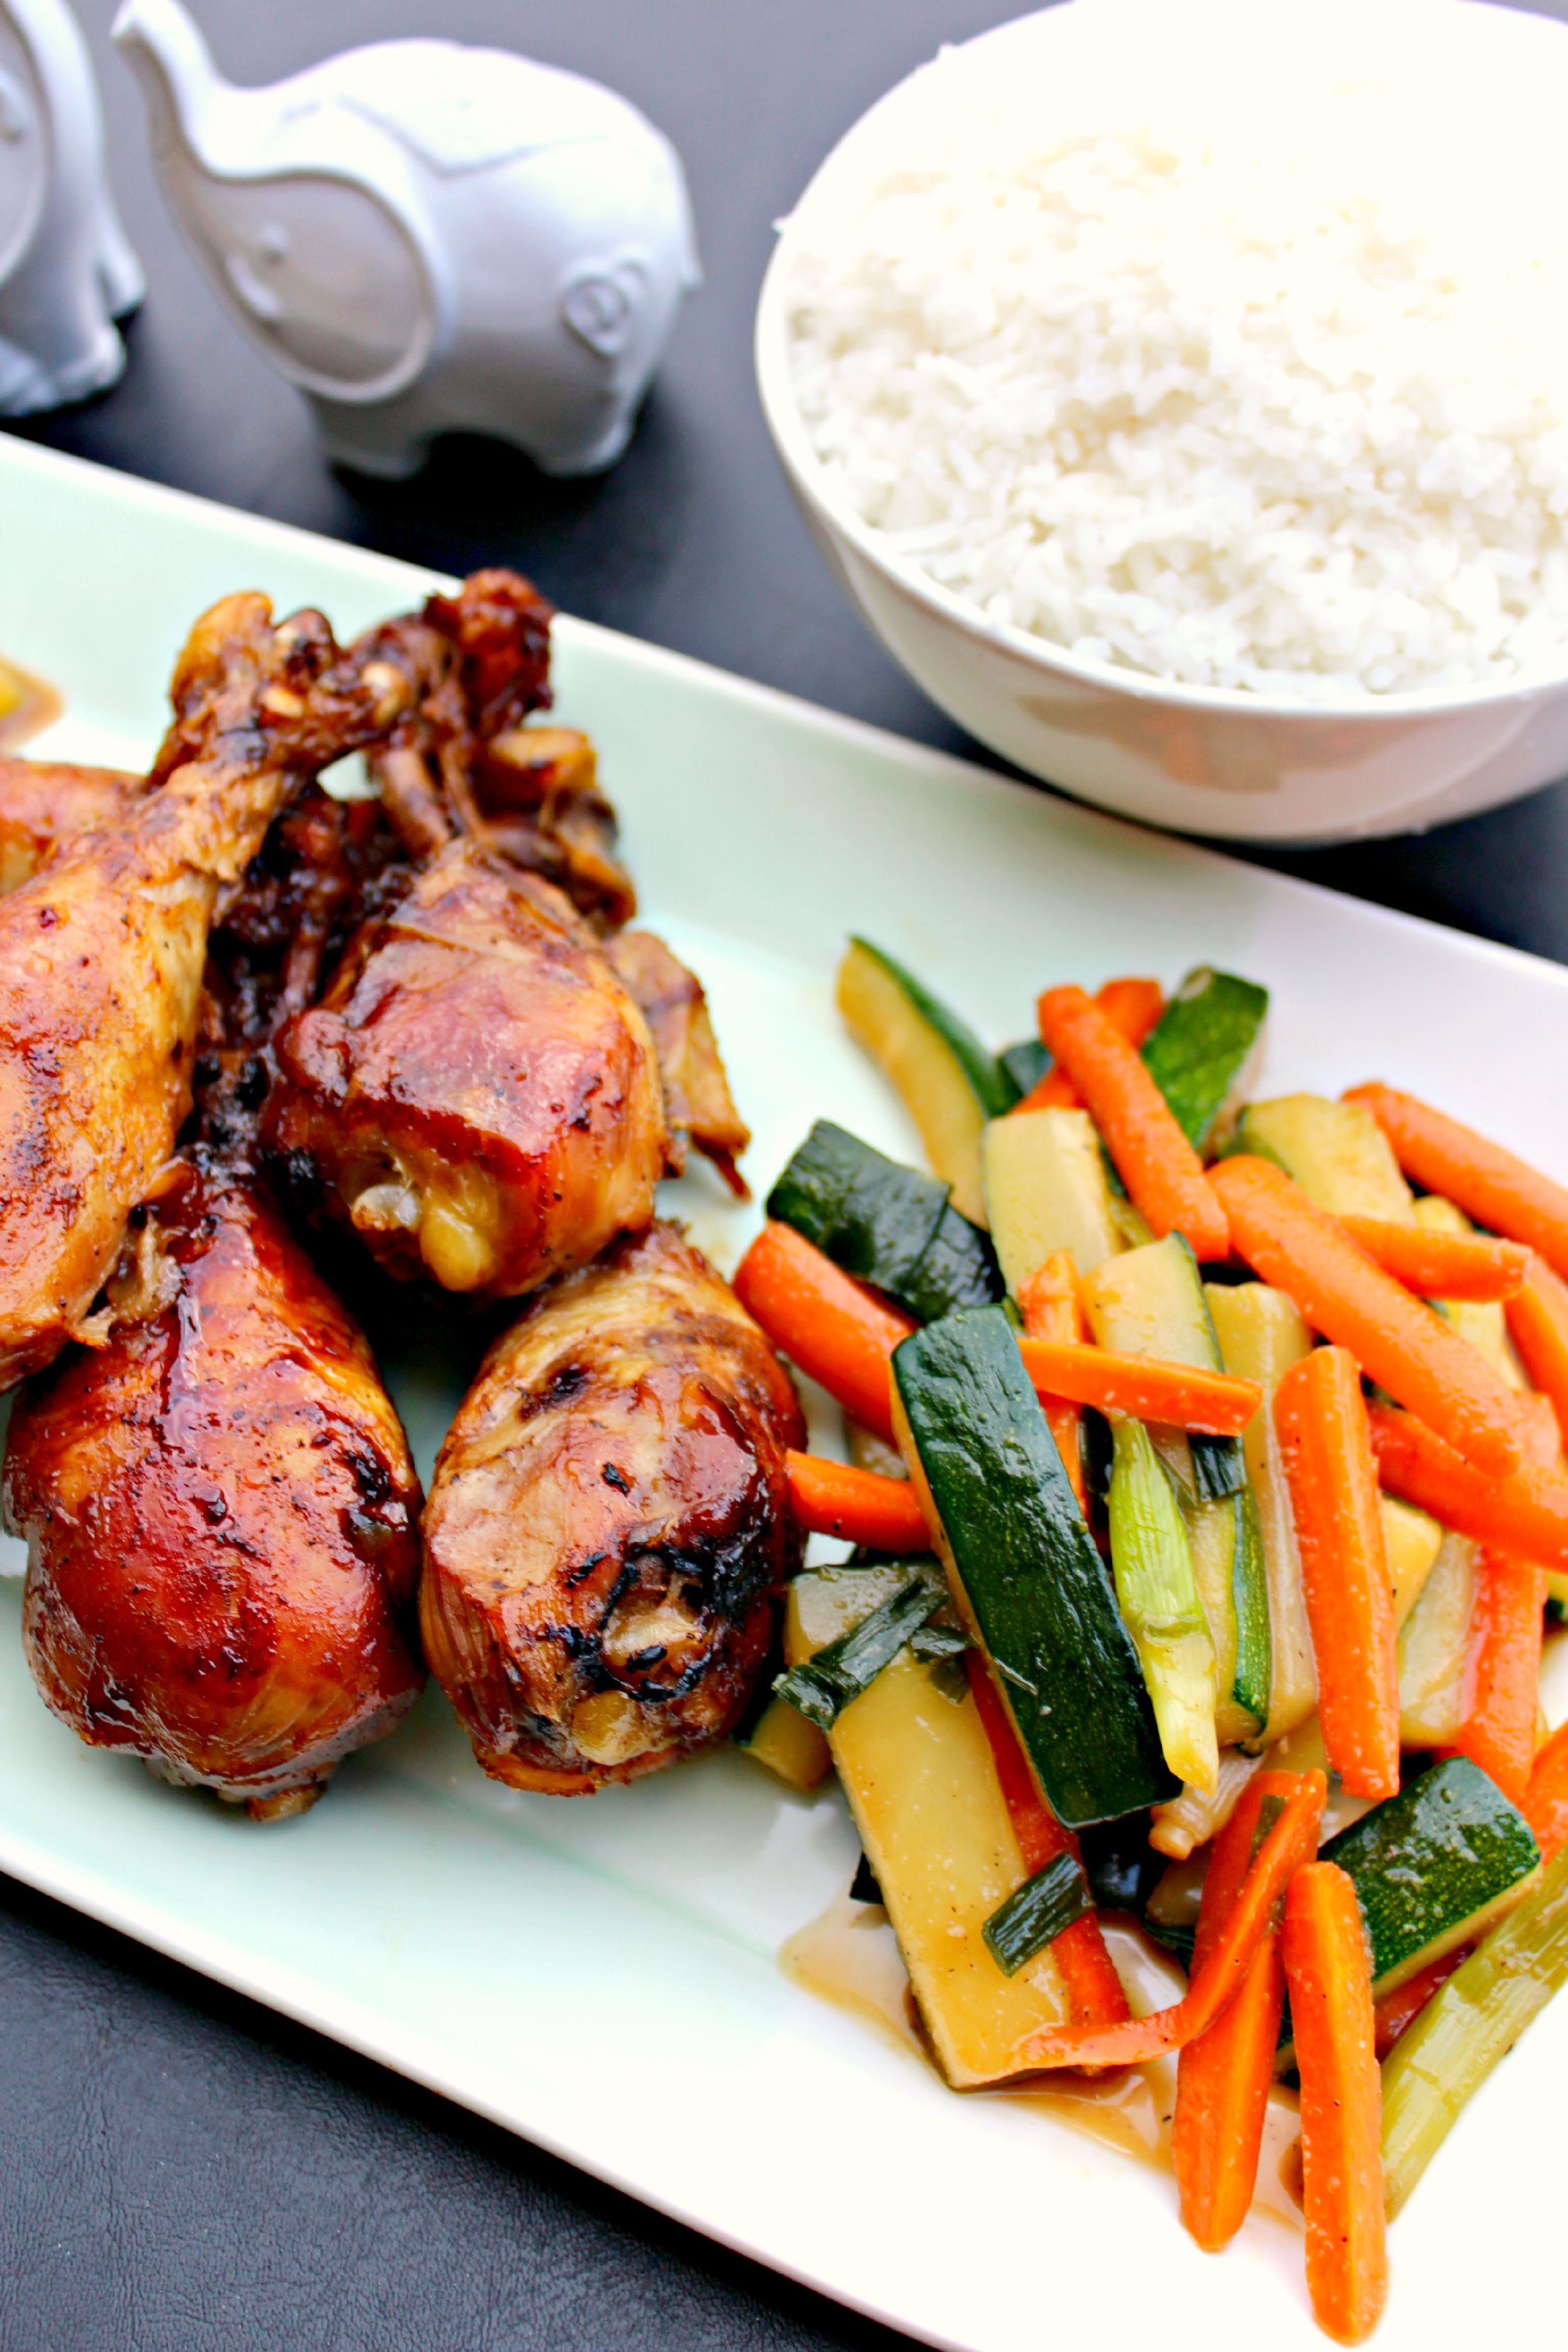 Slow cooker teriyaki chicken drummers and veggies the complete slow cooker teriyaki chicken drummers and veggies chicken drumsticks slow cooked and tossed with teriyaki forumfinder Choice Image